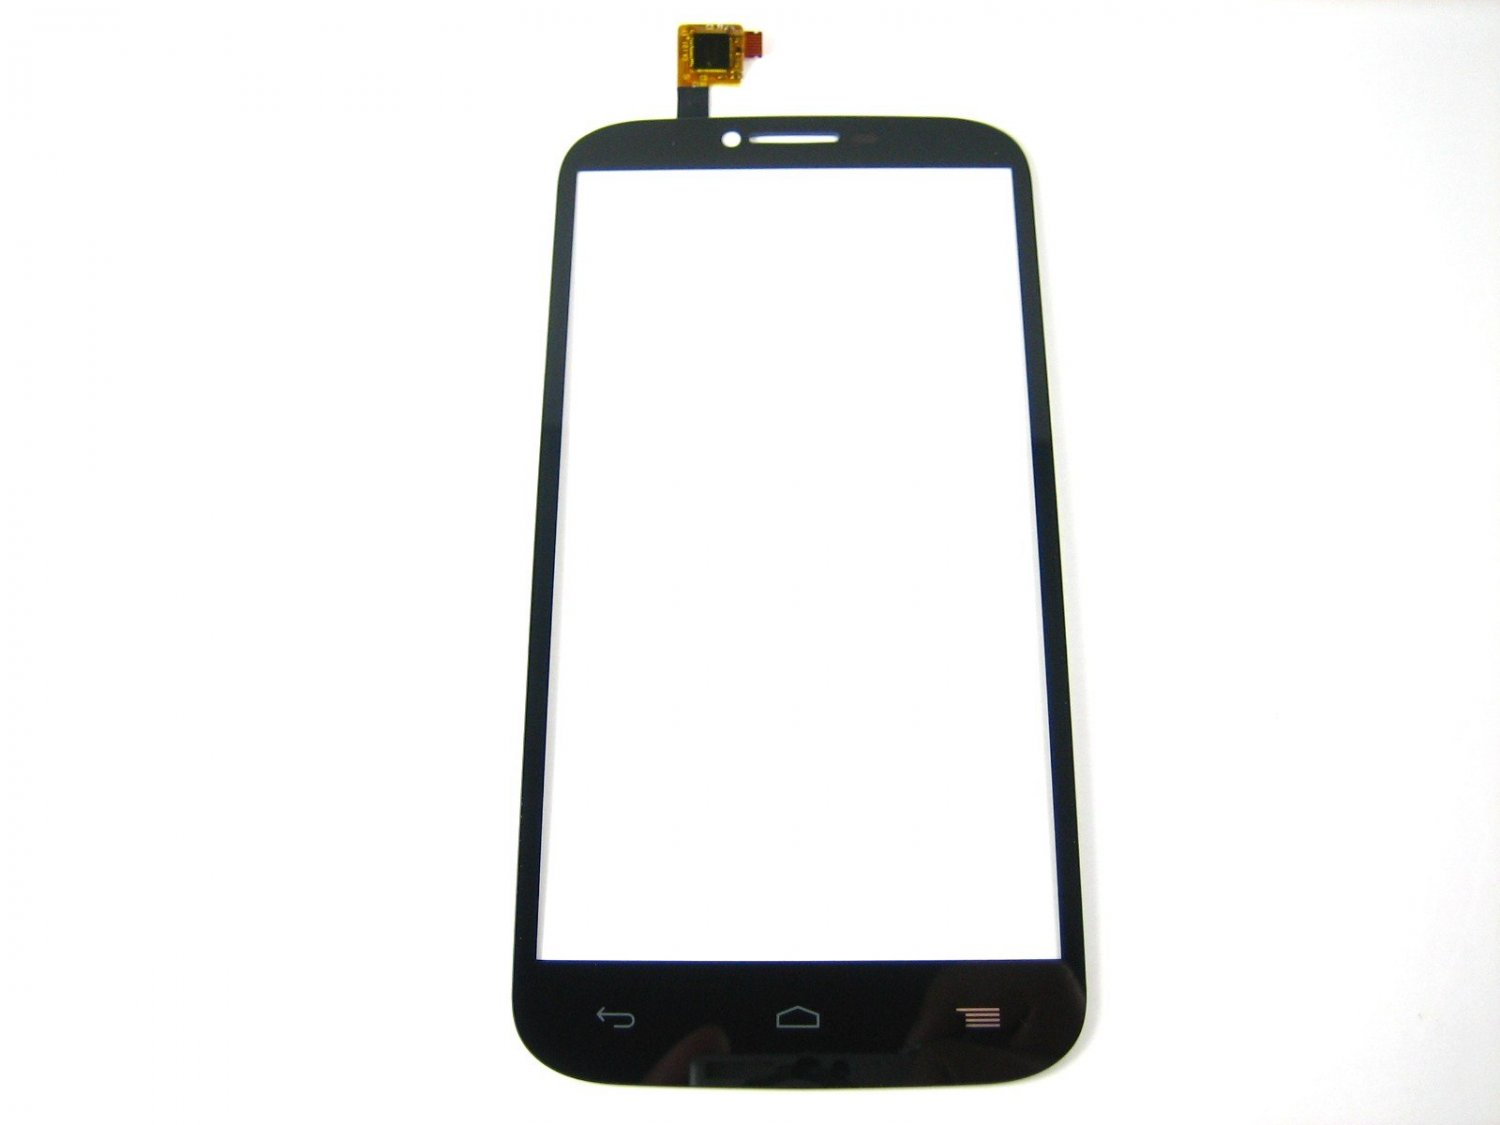 Touch Screen Digitizer Glass Repair Parts for Alcatel OneTouch Pop C9~Black 04037-MnTSPopC9nnnnB